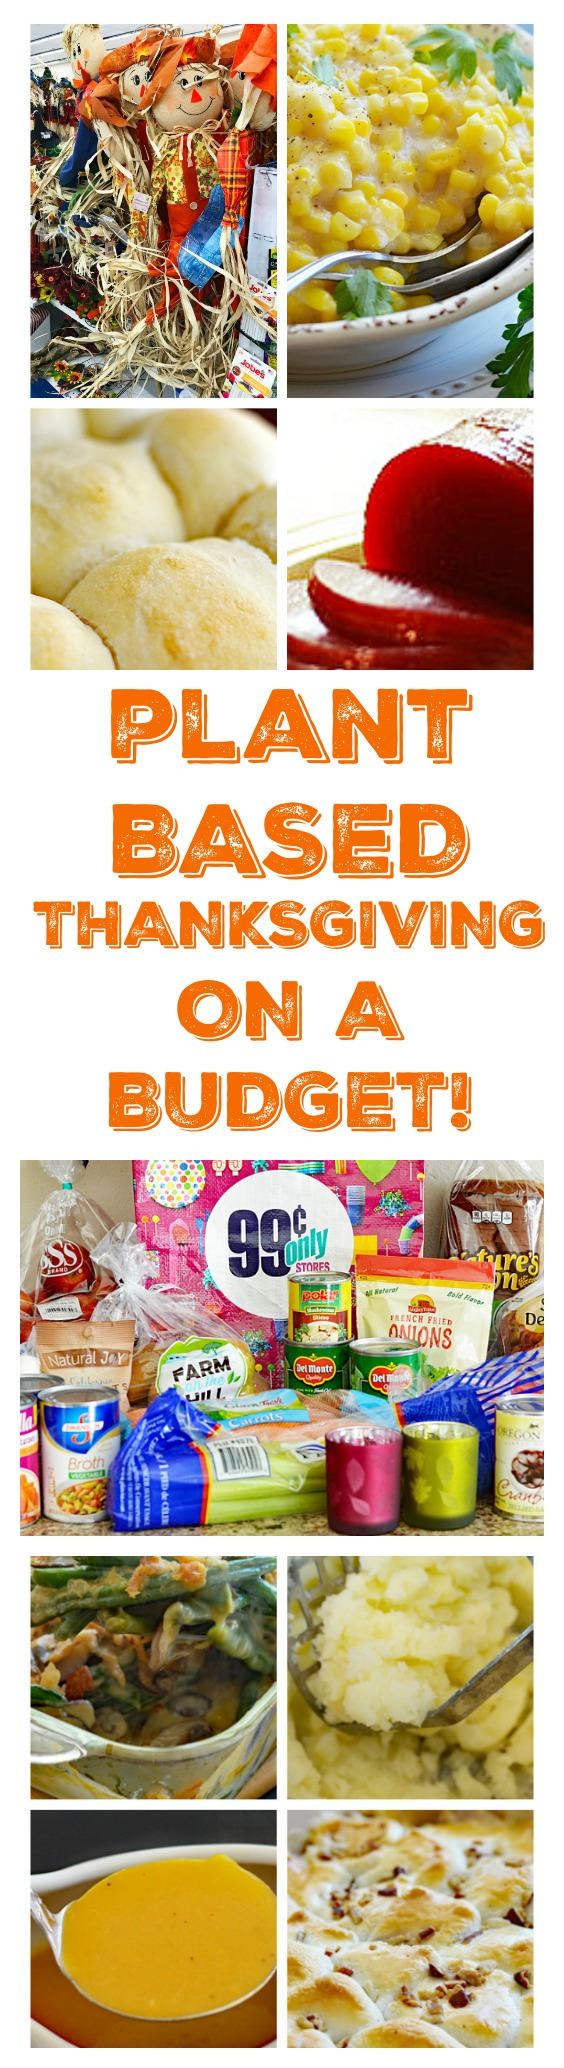 Plant Based Thanksgiving On a Budget with the 99!